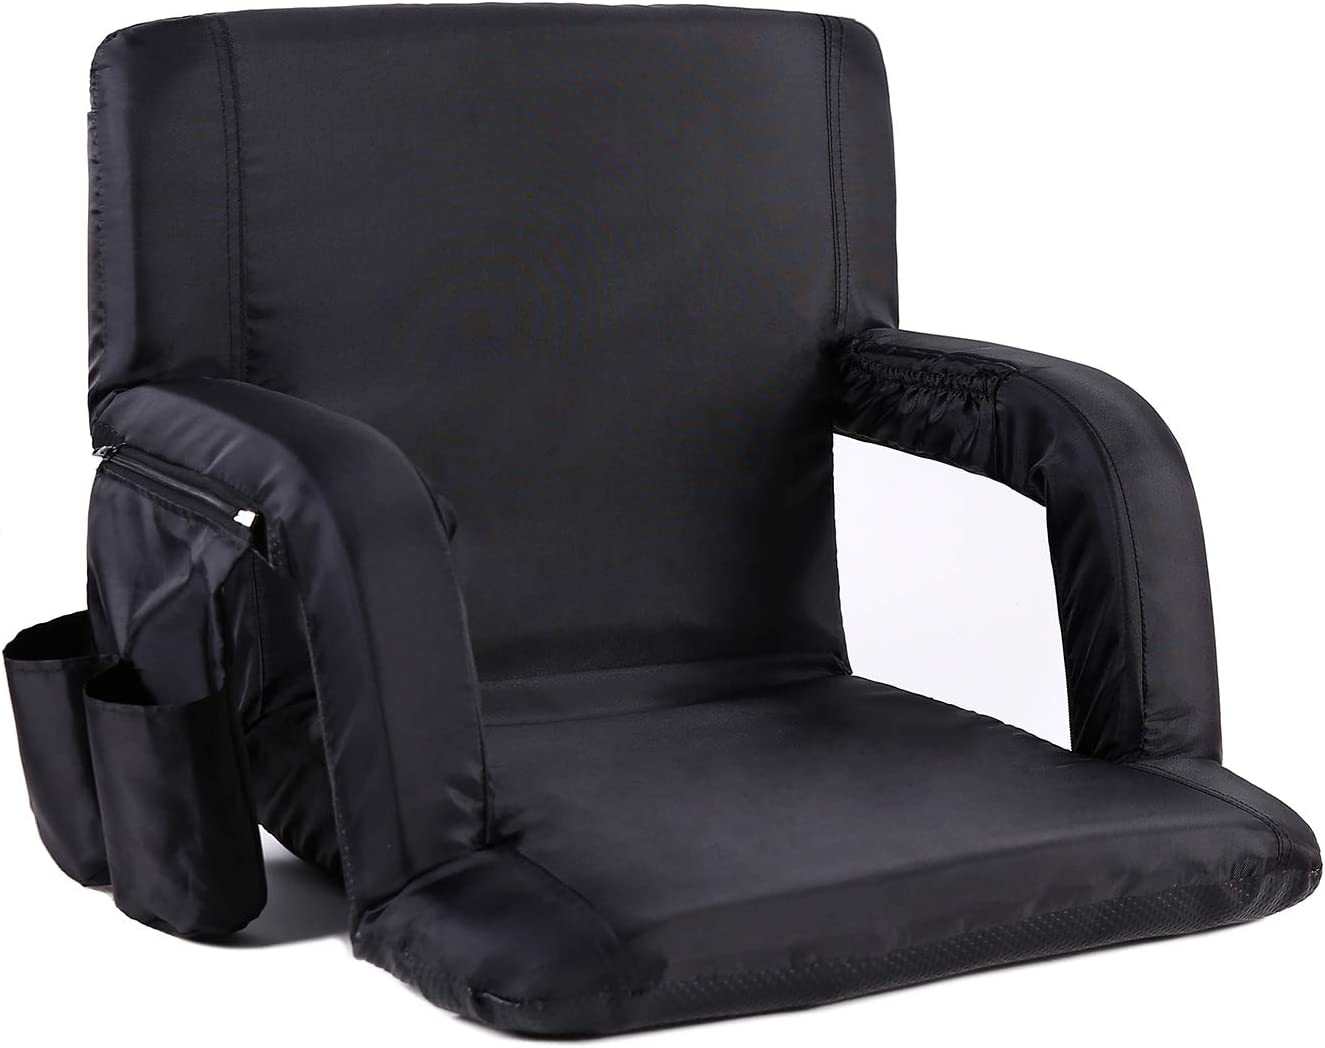 Sportneer Portable Stadium Seat Chair, Reclining Seat for Bleachers with Padded Cushion Shoulder Straps